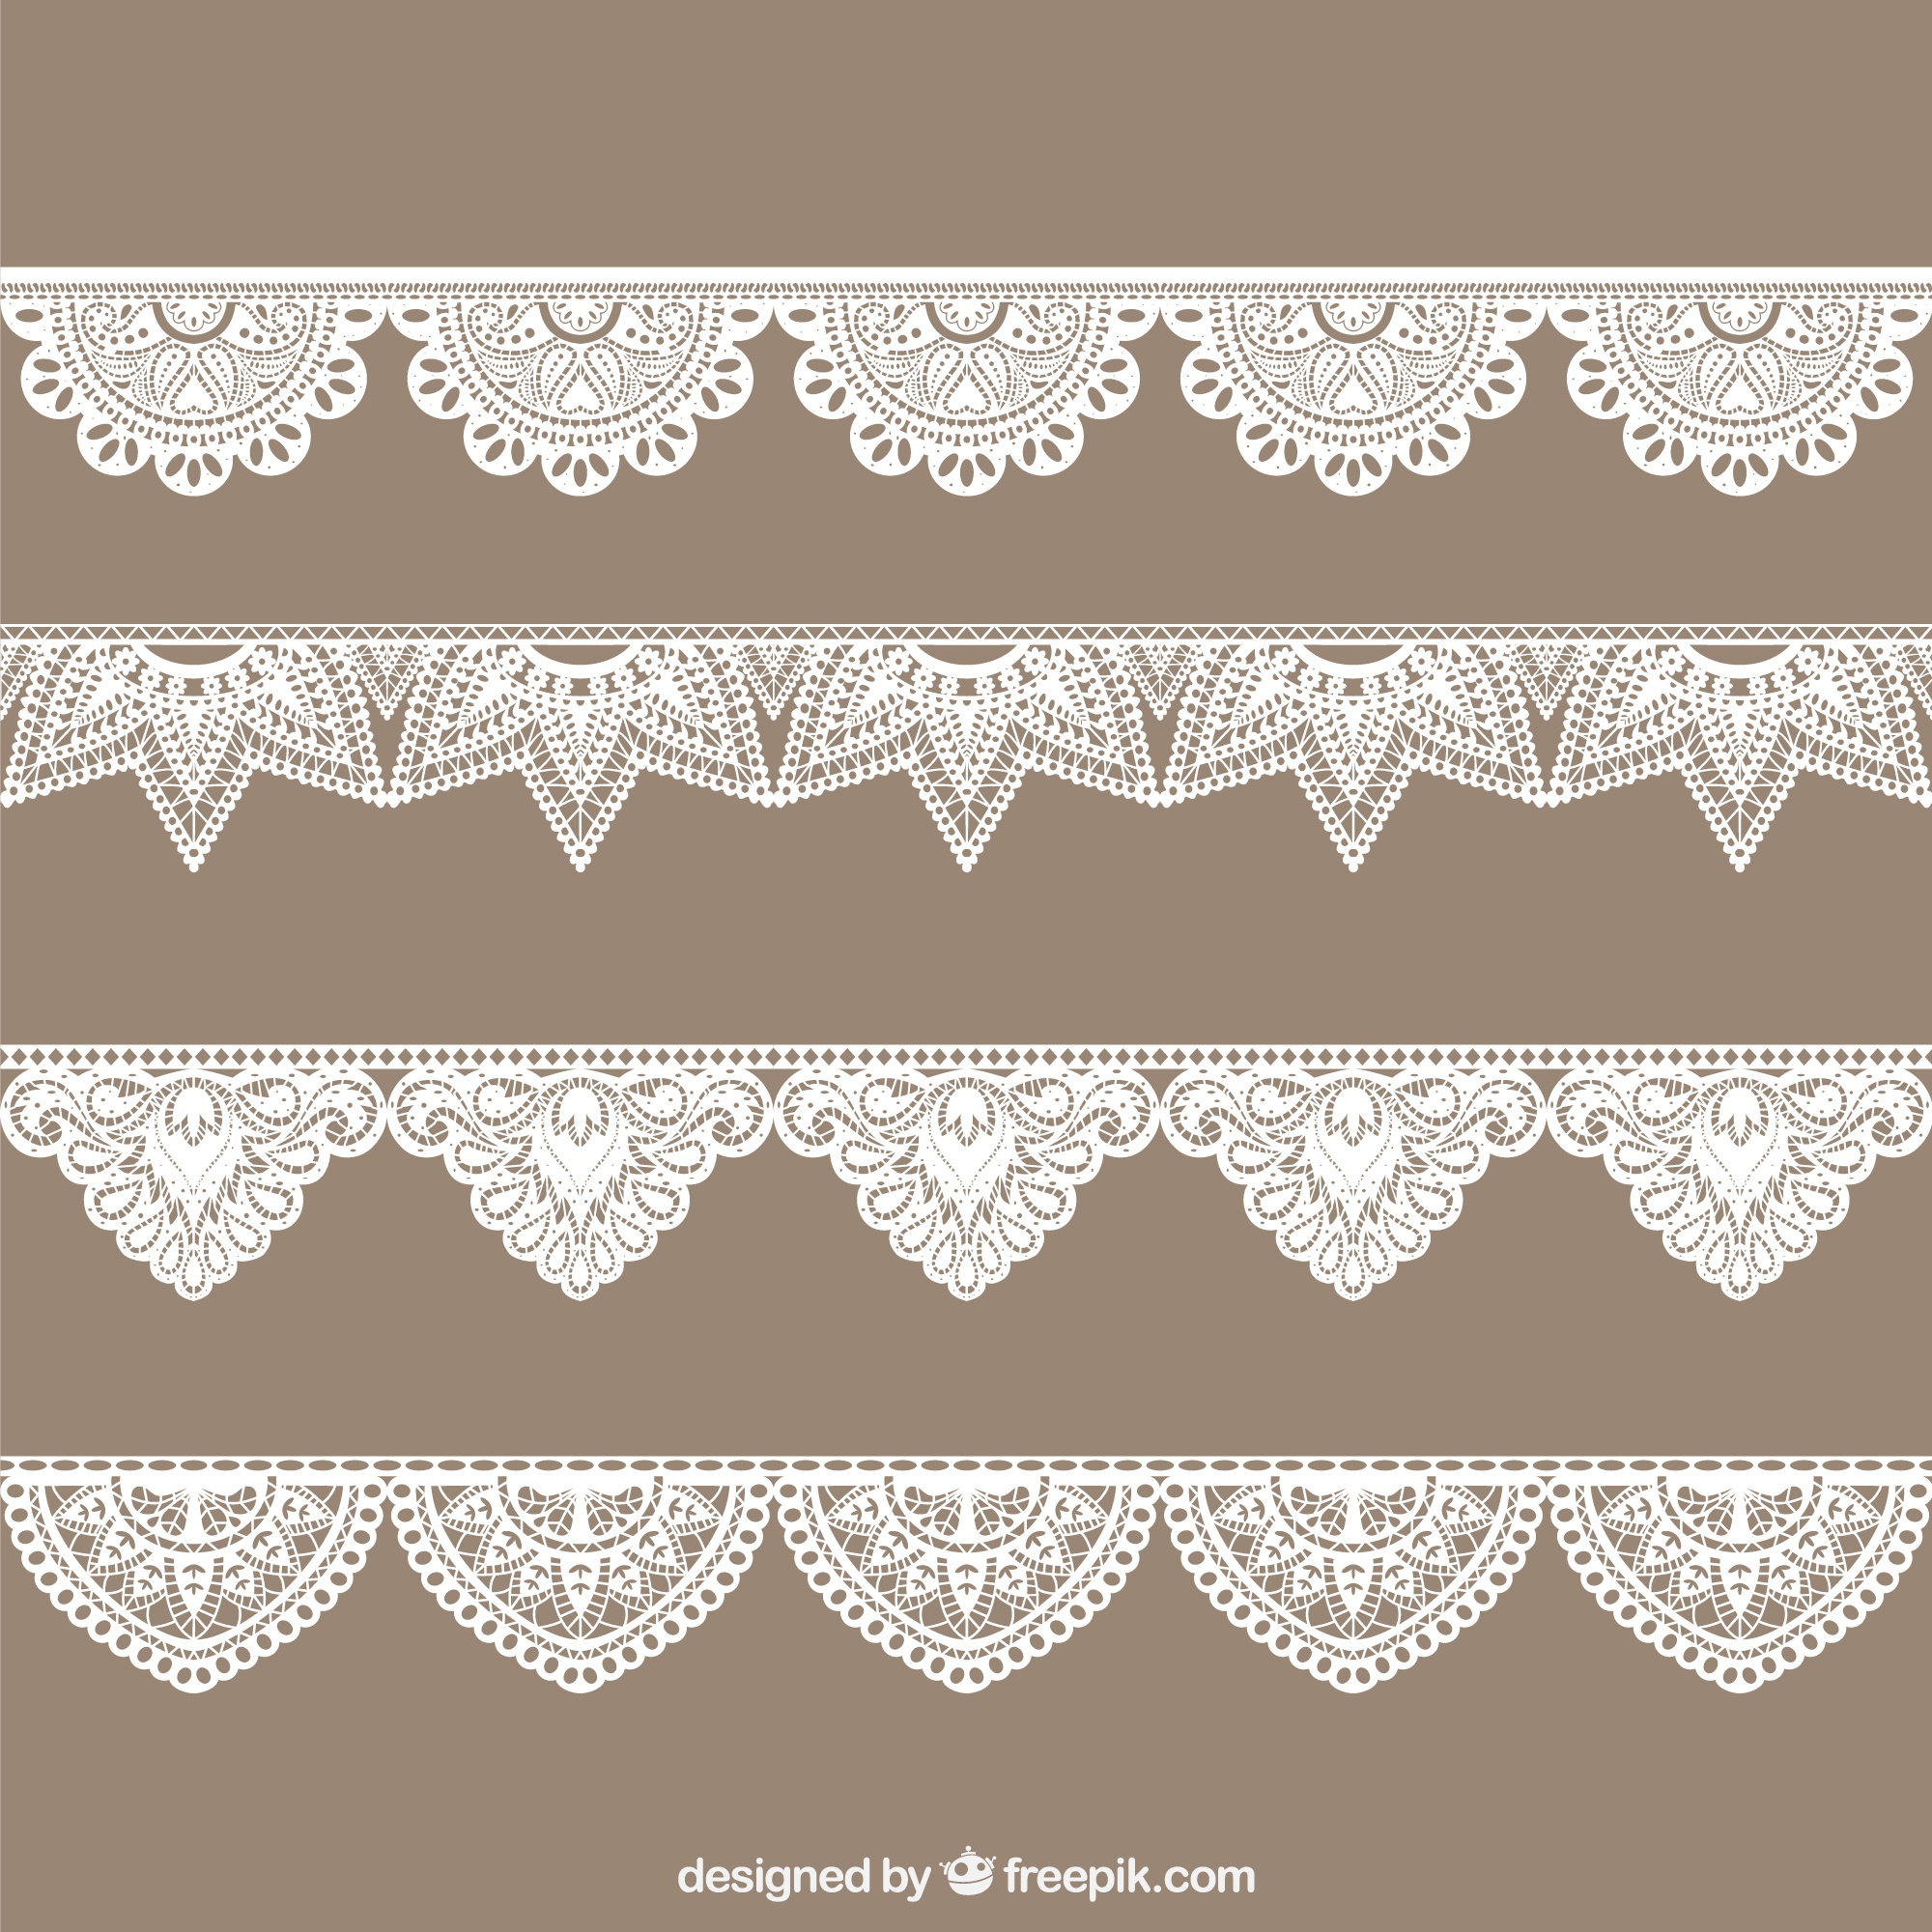 Hand drawn lace border collection